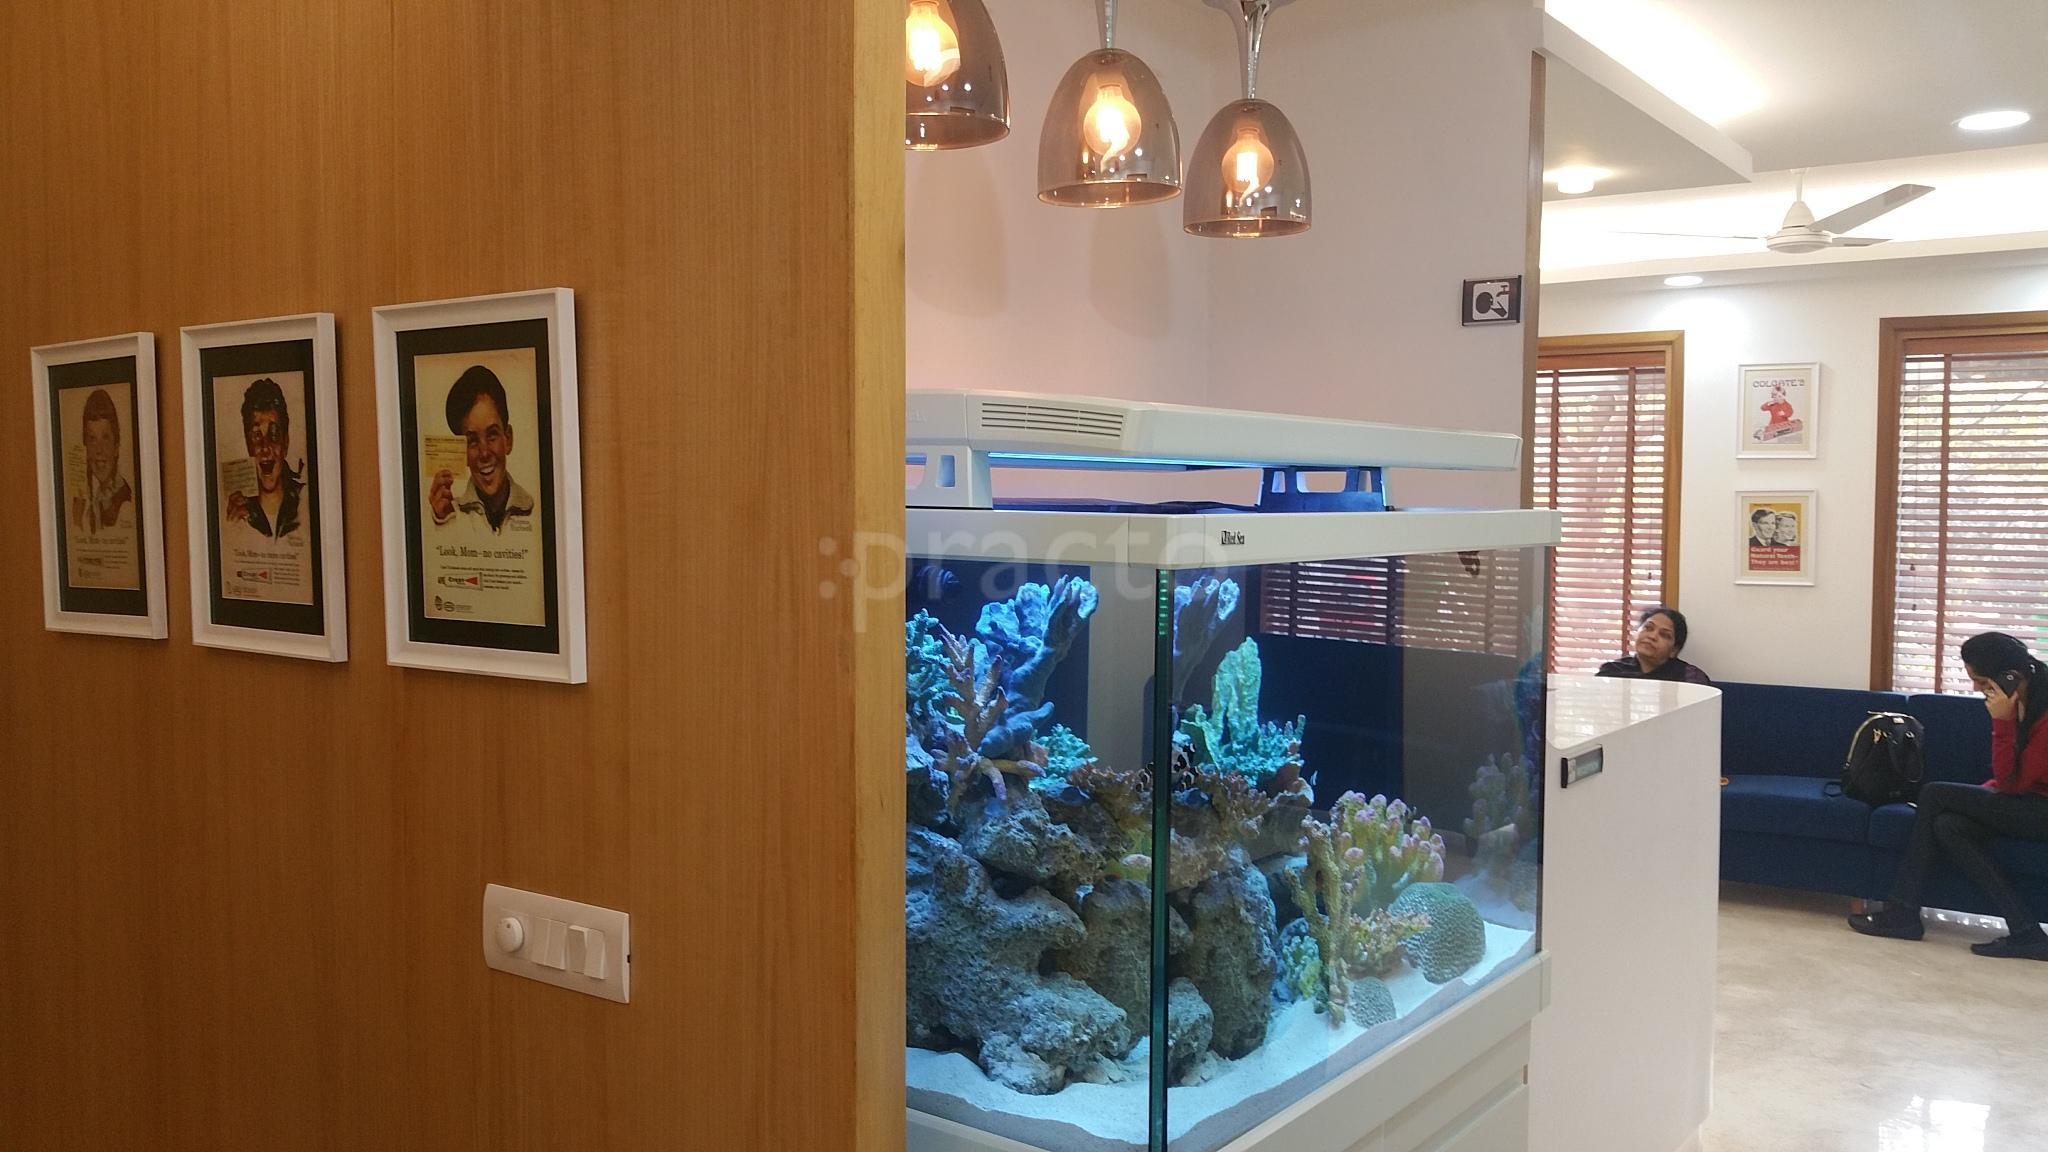 Fish Aquarium Rates In Delhi - Dentists in green park delhi instant appointment booking view fees feedbacks practo